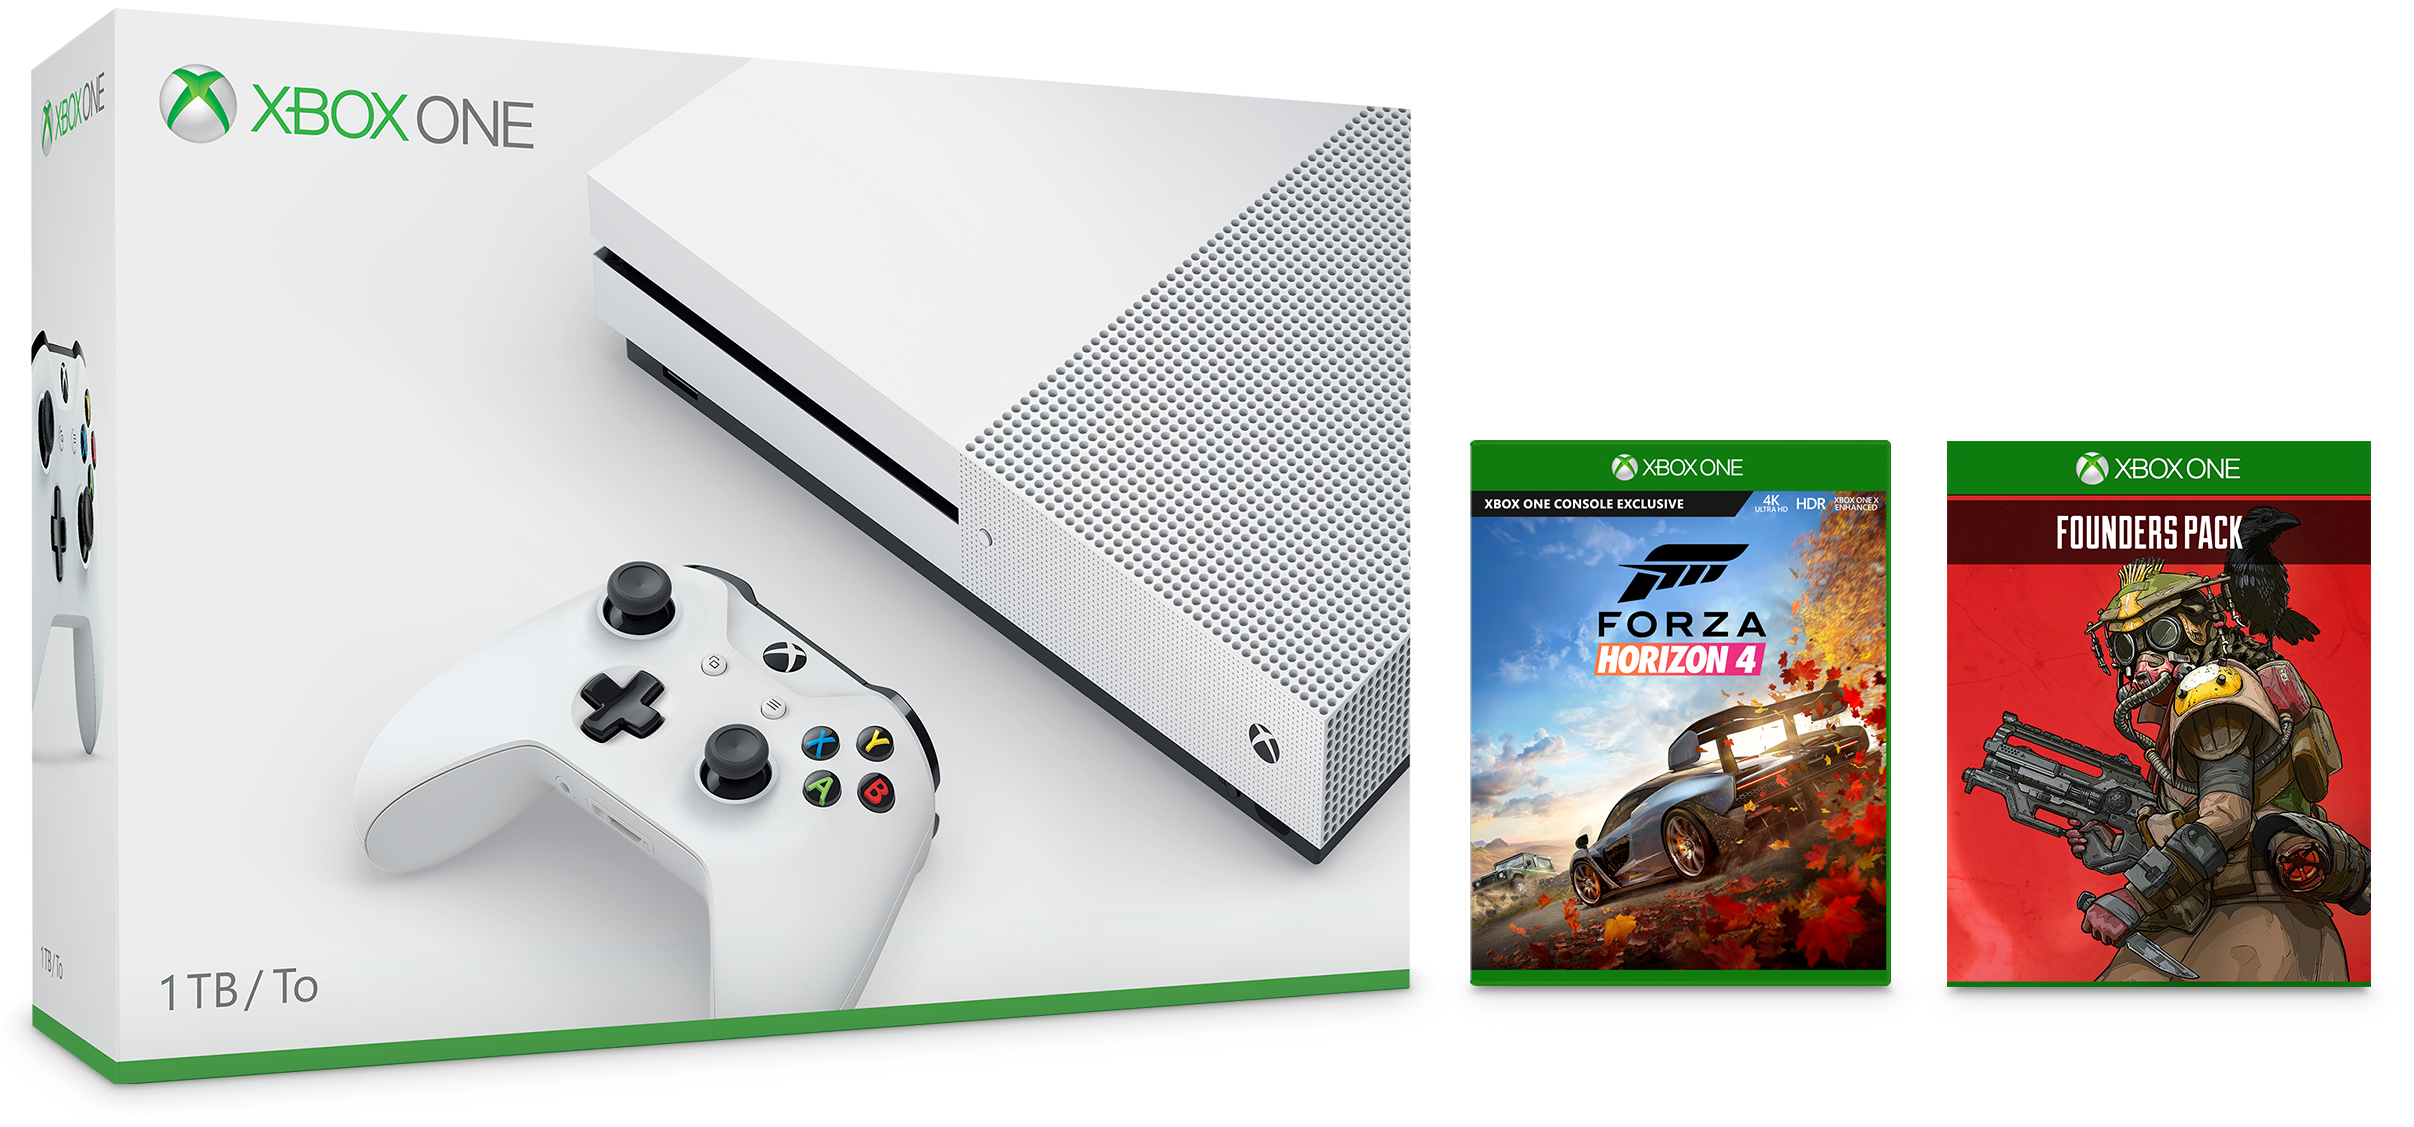 Xbox One S 1TB Console – Forza Horizon 4 Bundle and Apex Legends Founder's Pack